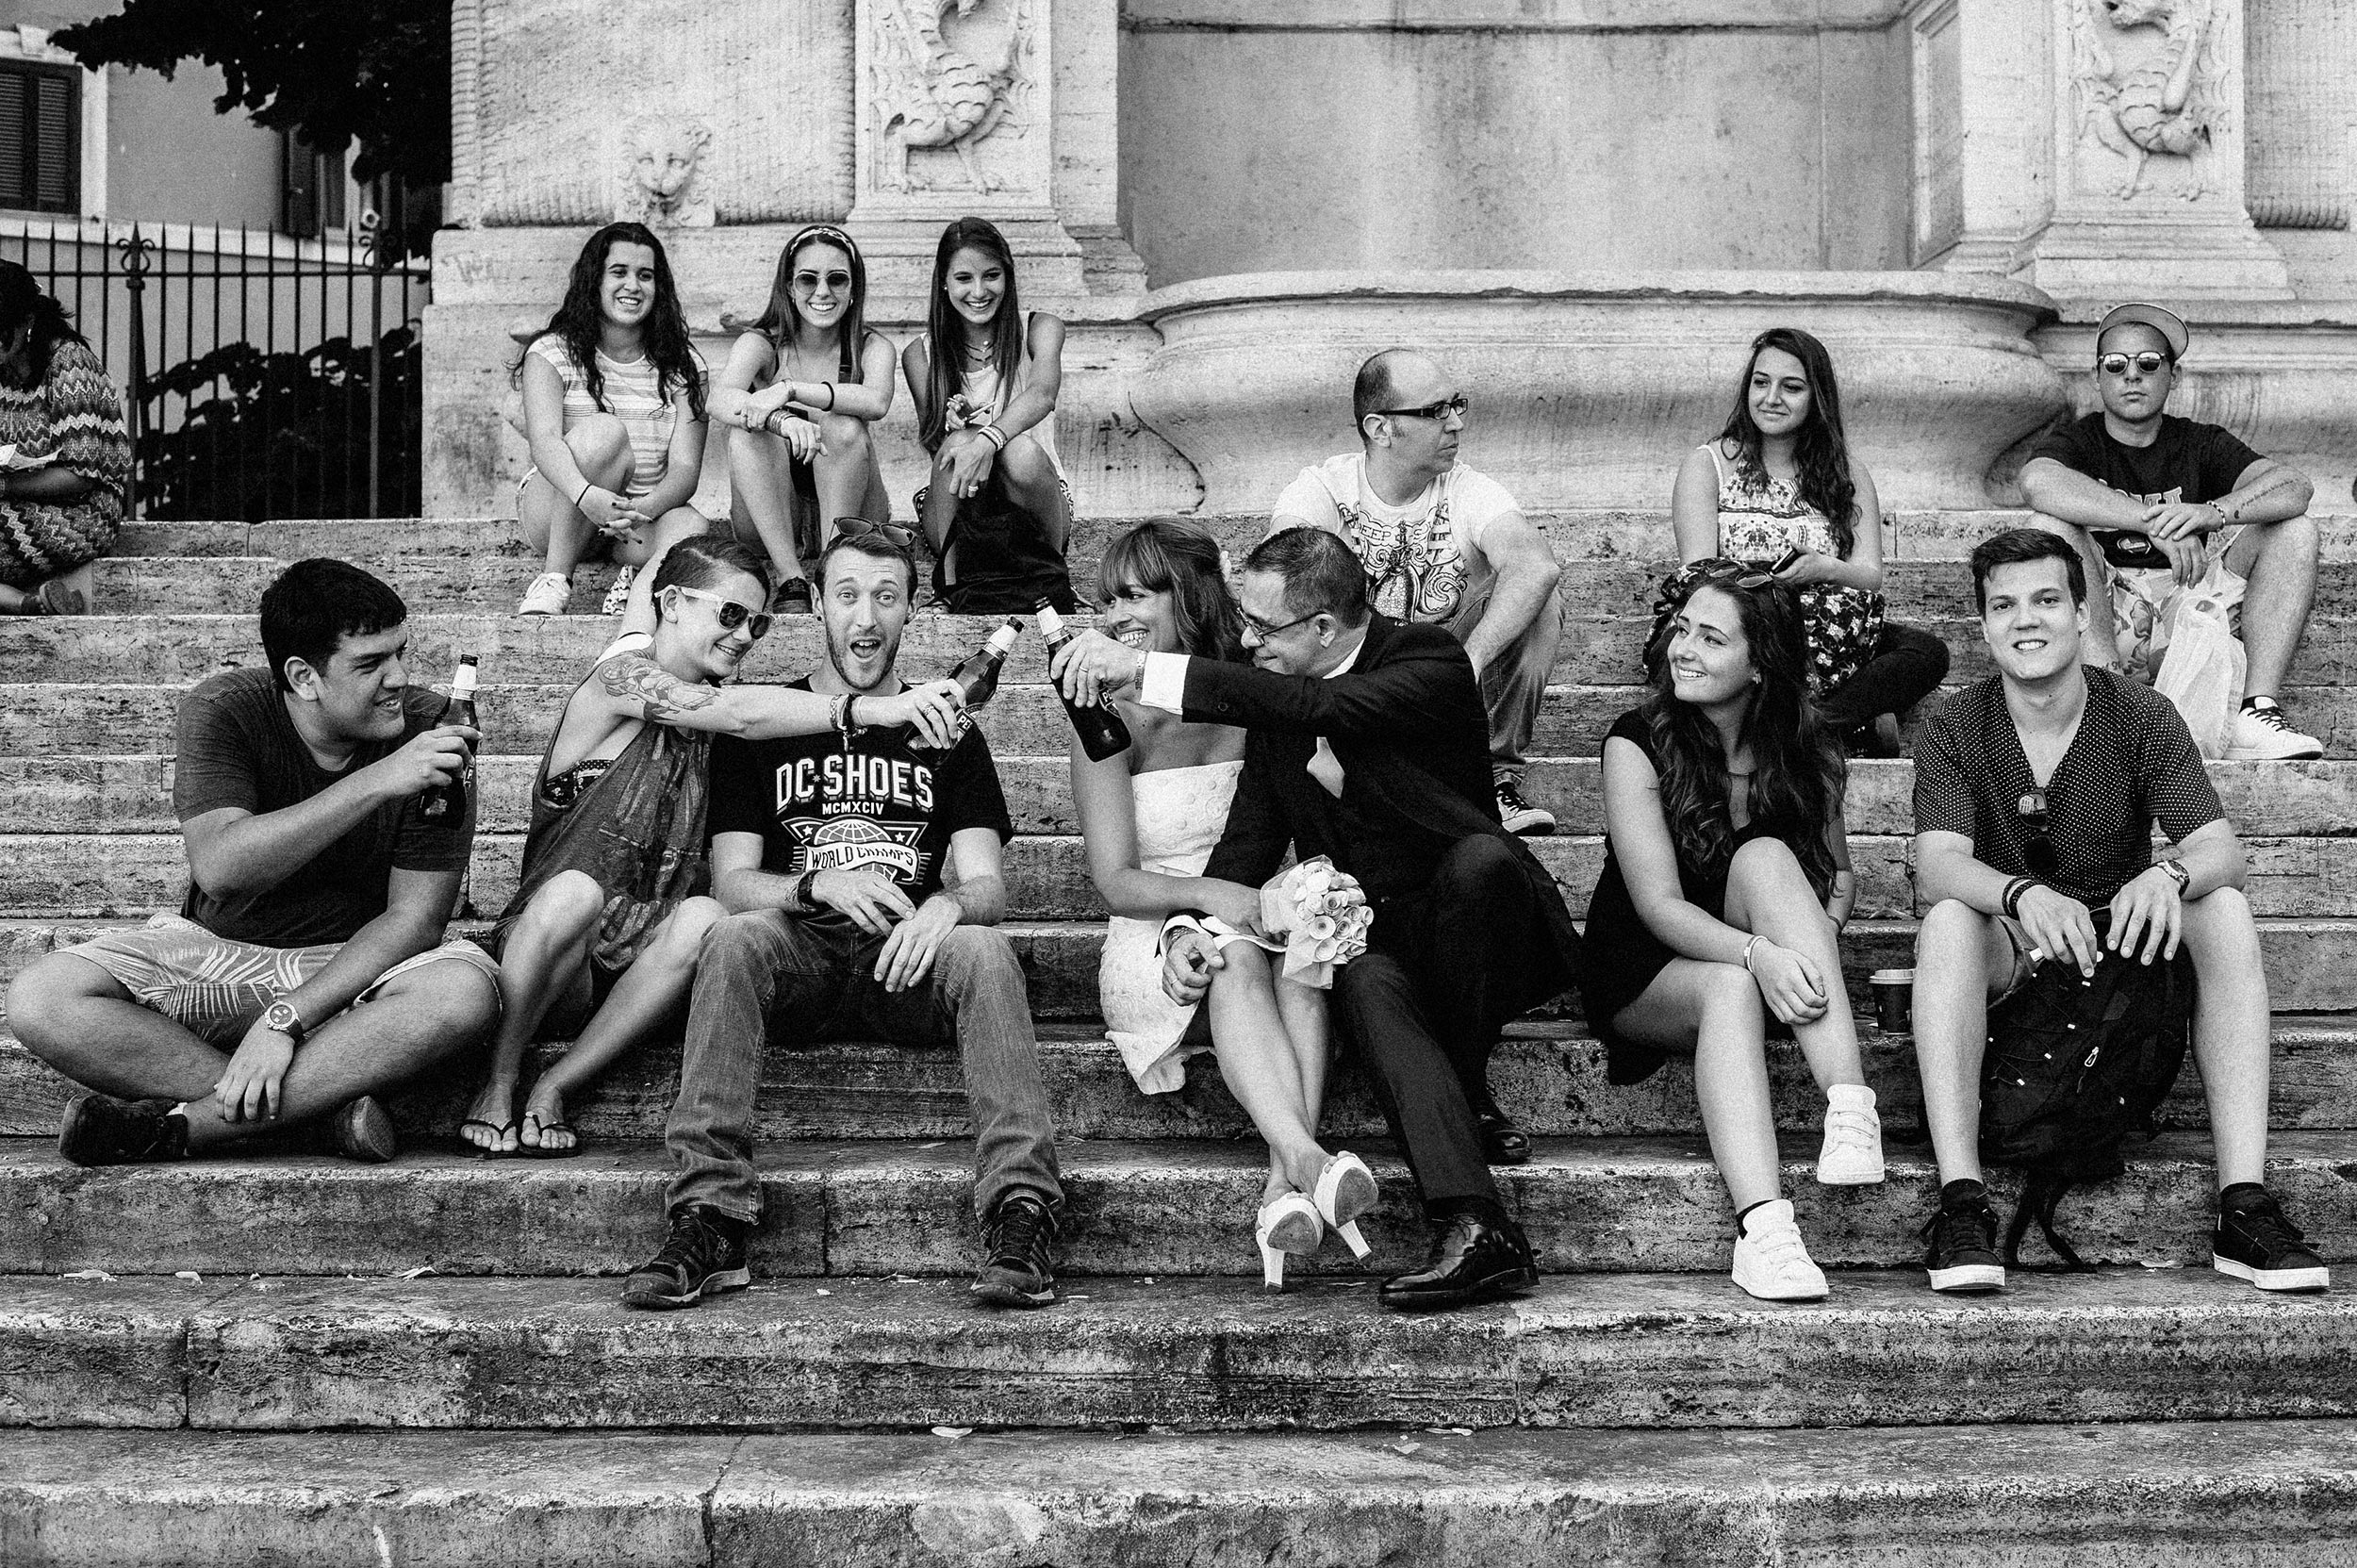 rome-piazza-trilussa-trastevere-black-and-white-documentary-wedding-photography-by-Alessandro-Avenali.jpg